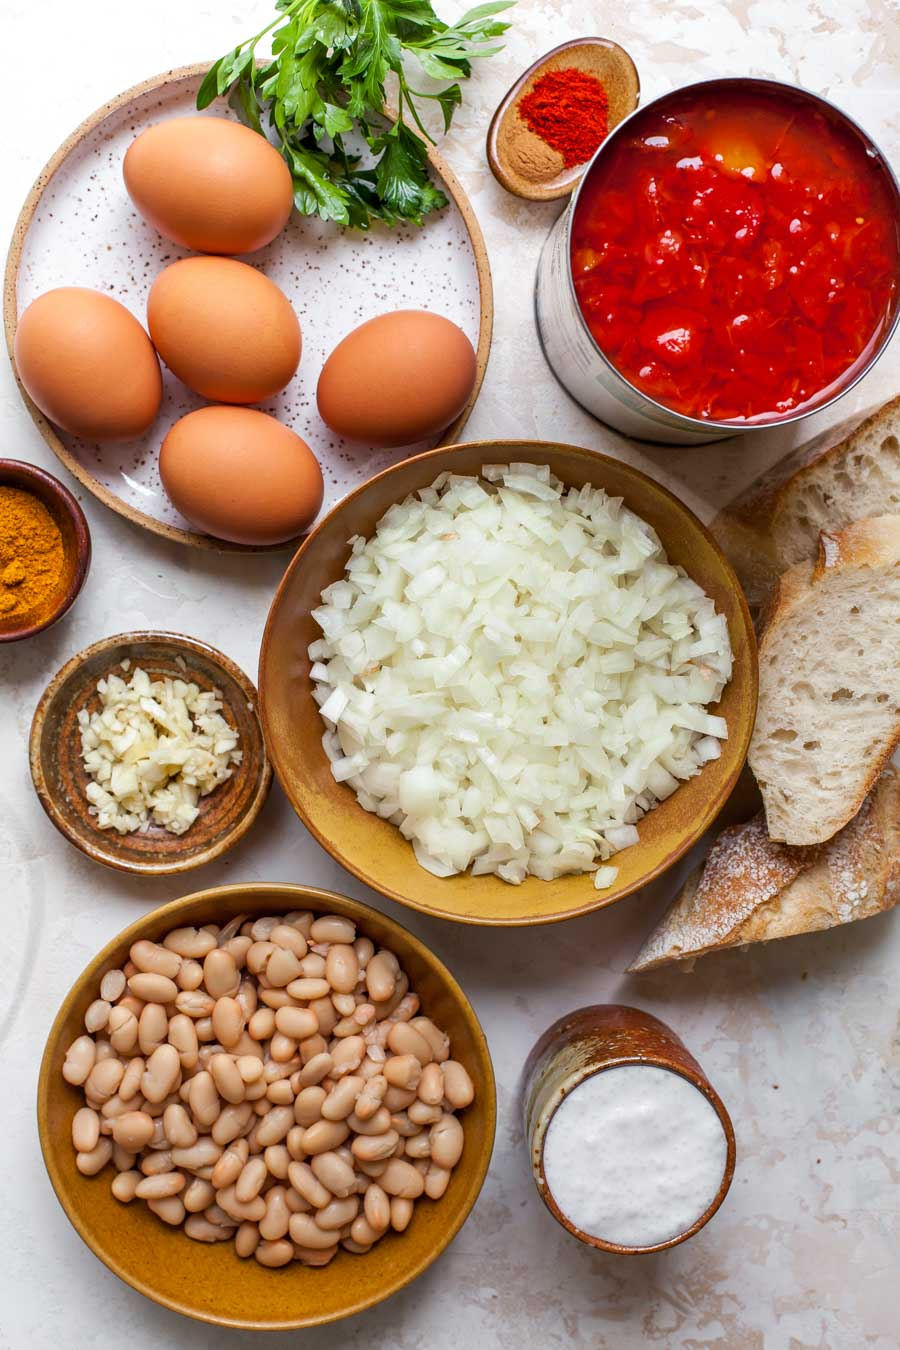 Ingredient overhead shot featuring eggs, spices, onions, tomatoes, and bread